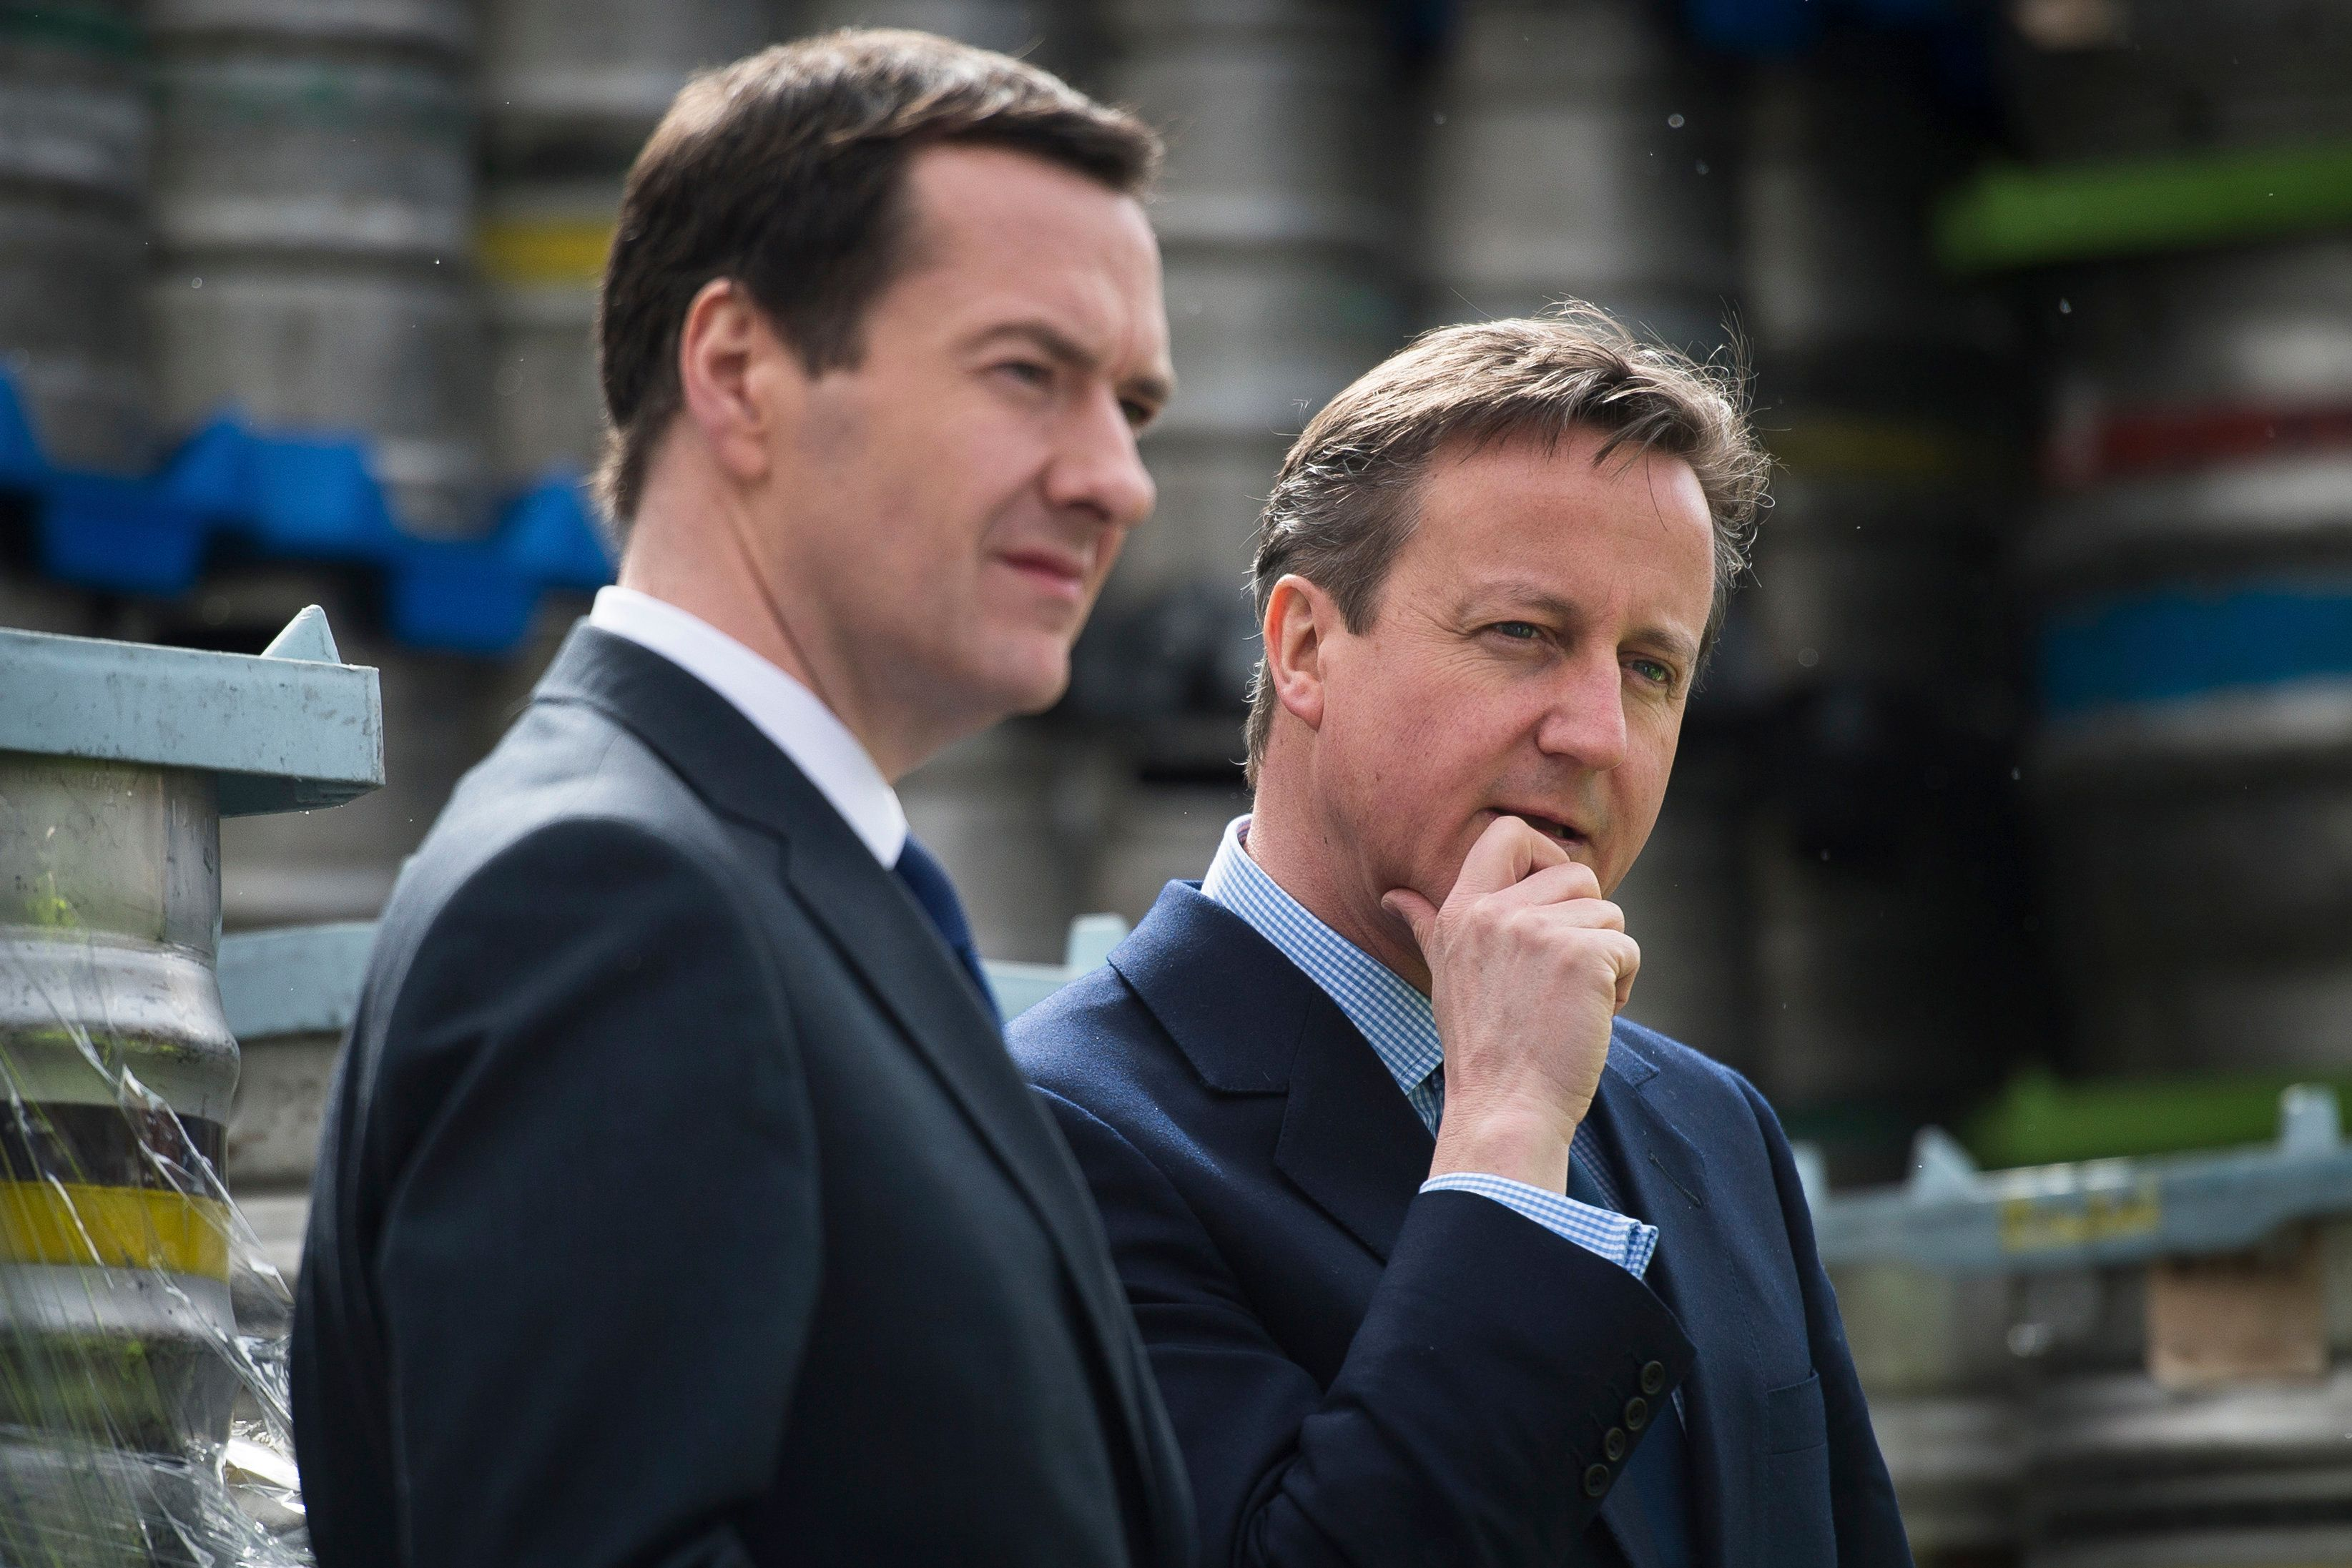 Former Prime Minister David Cameron withthen-Chancellor George